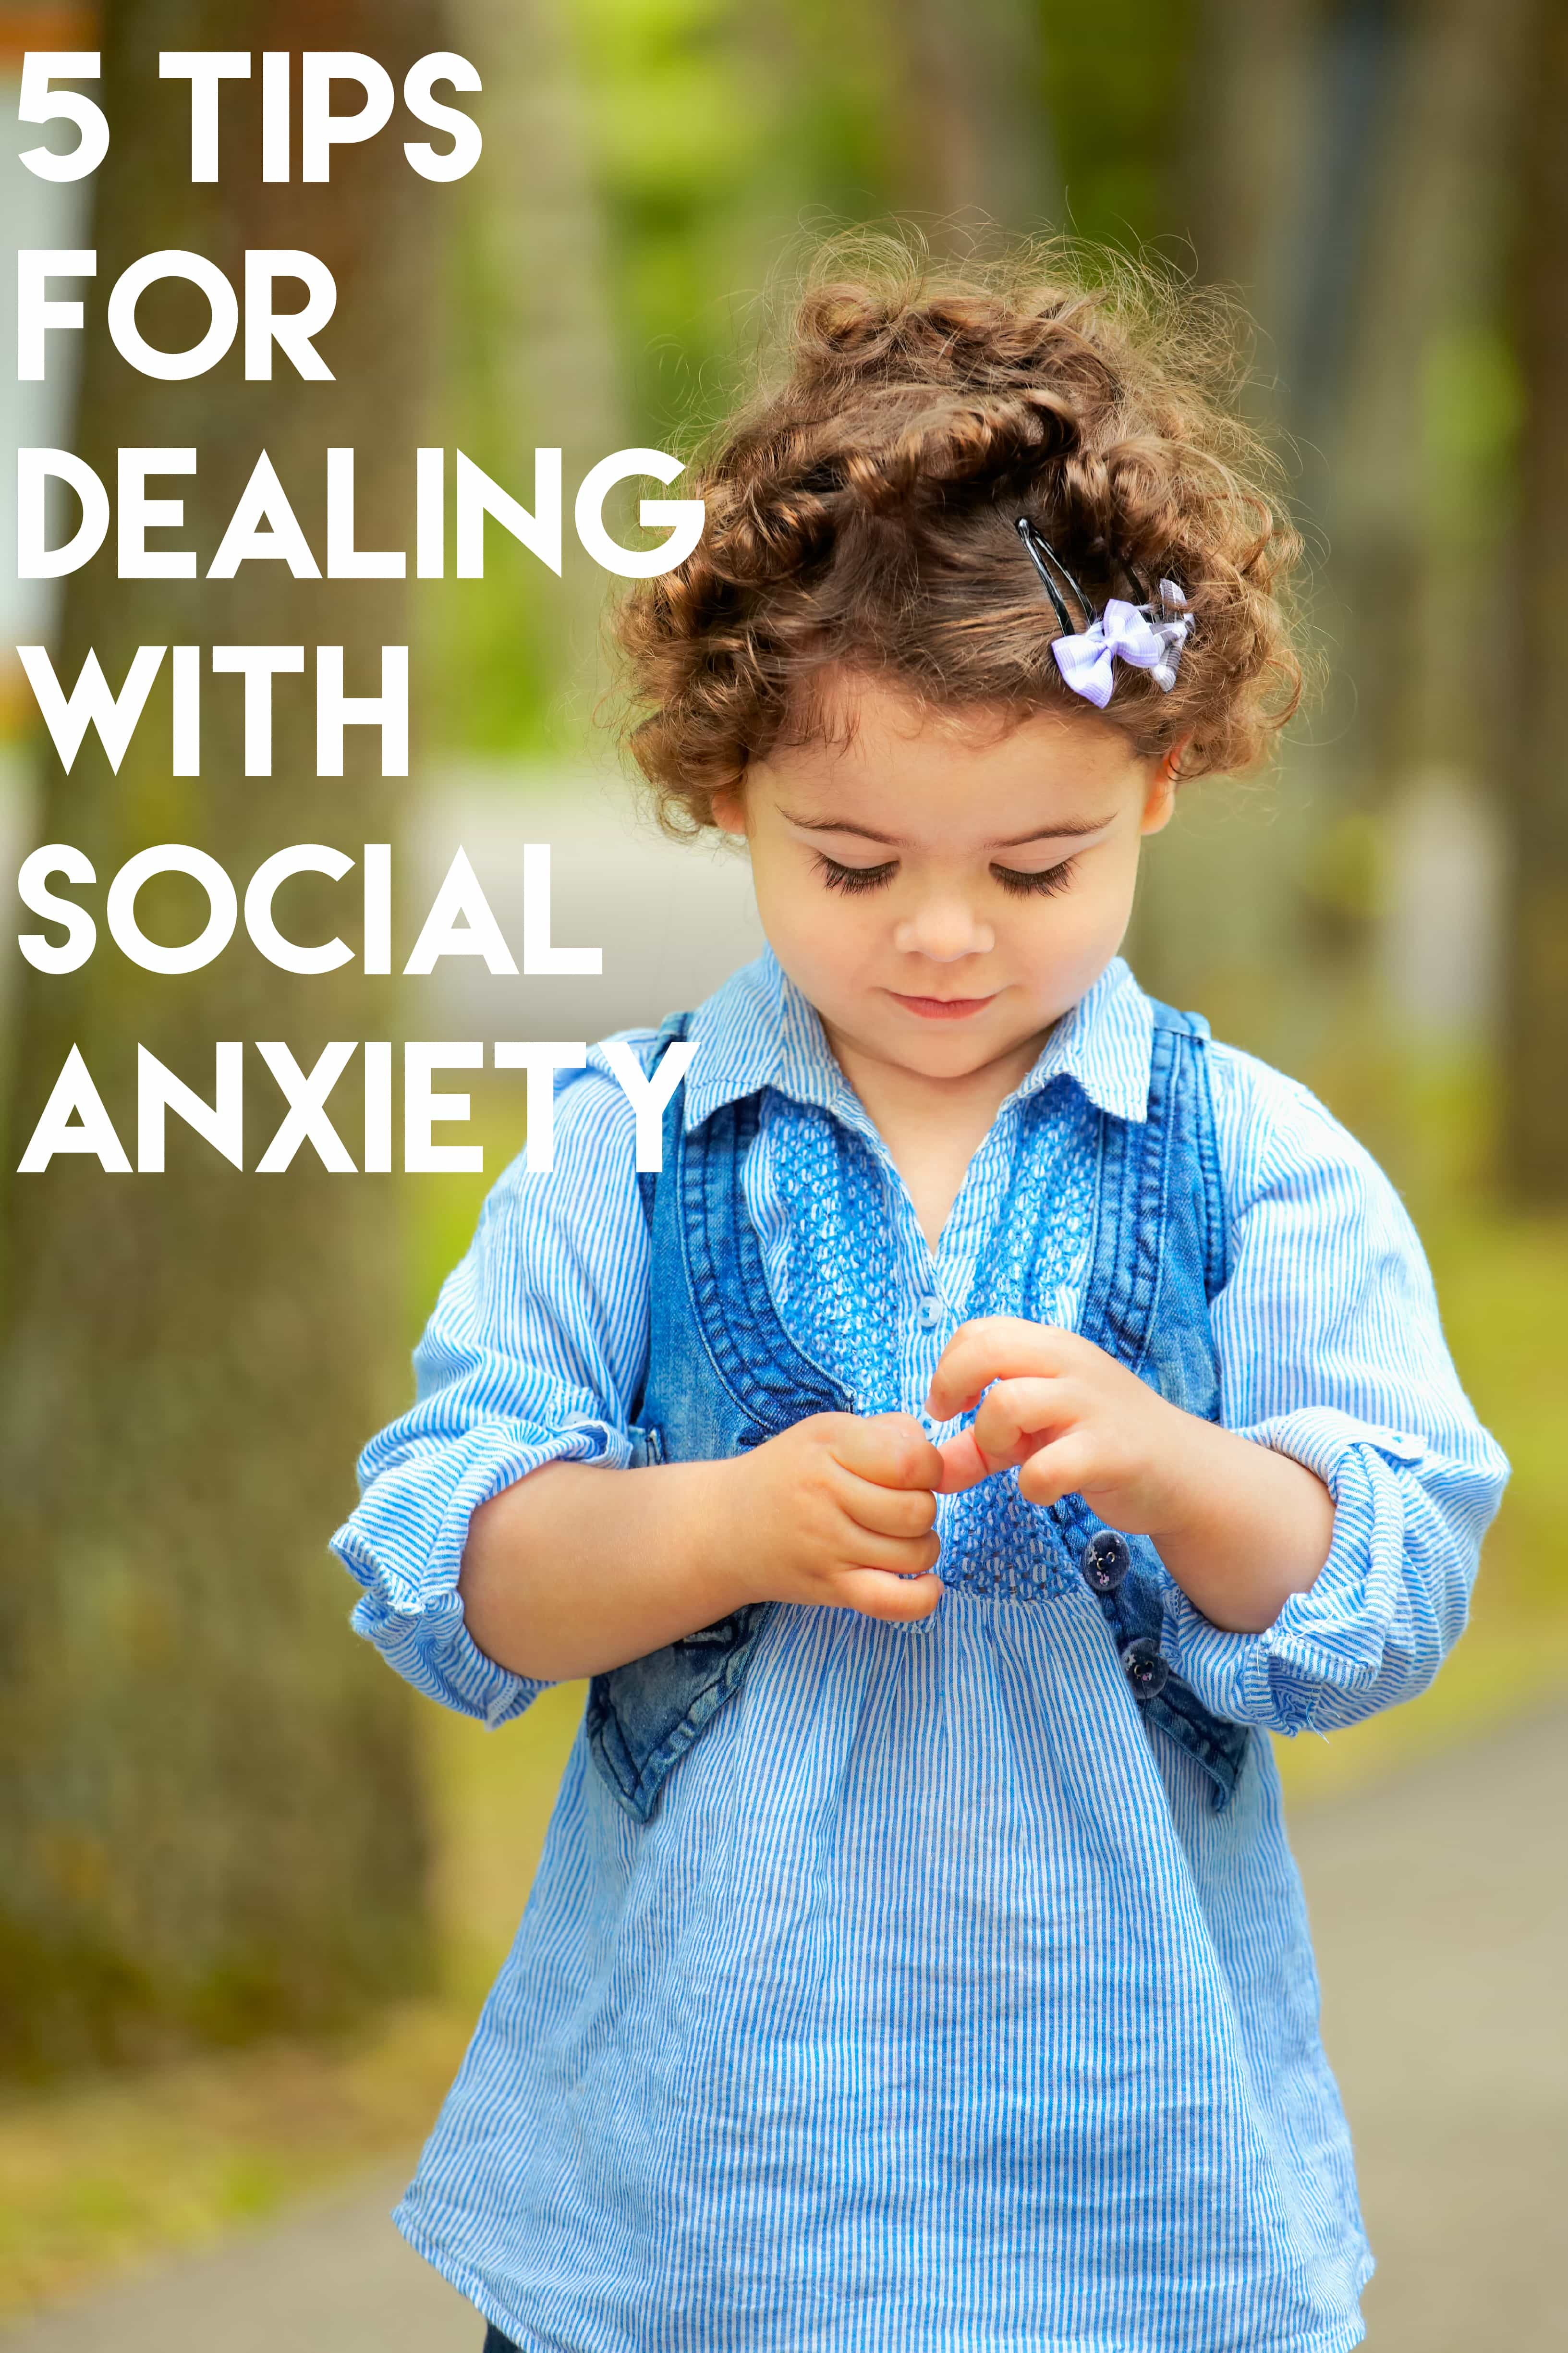 5 Tips For Dealing With Social Anxiety